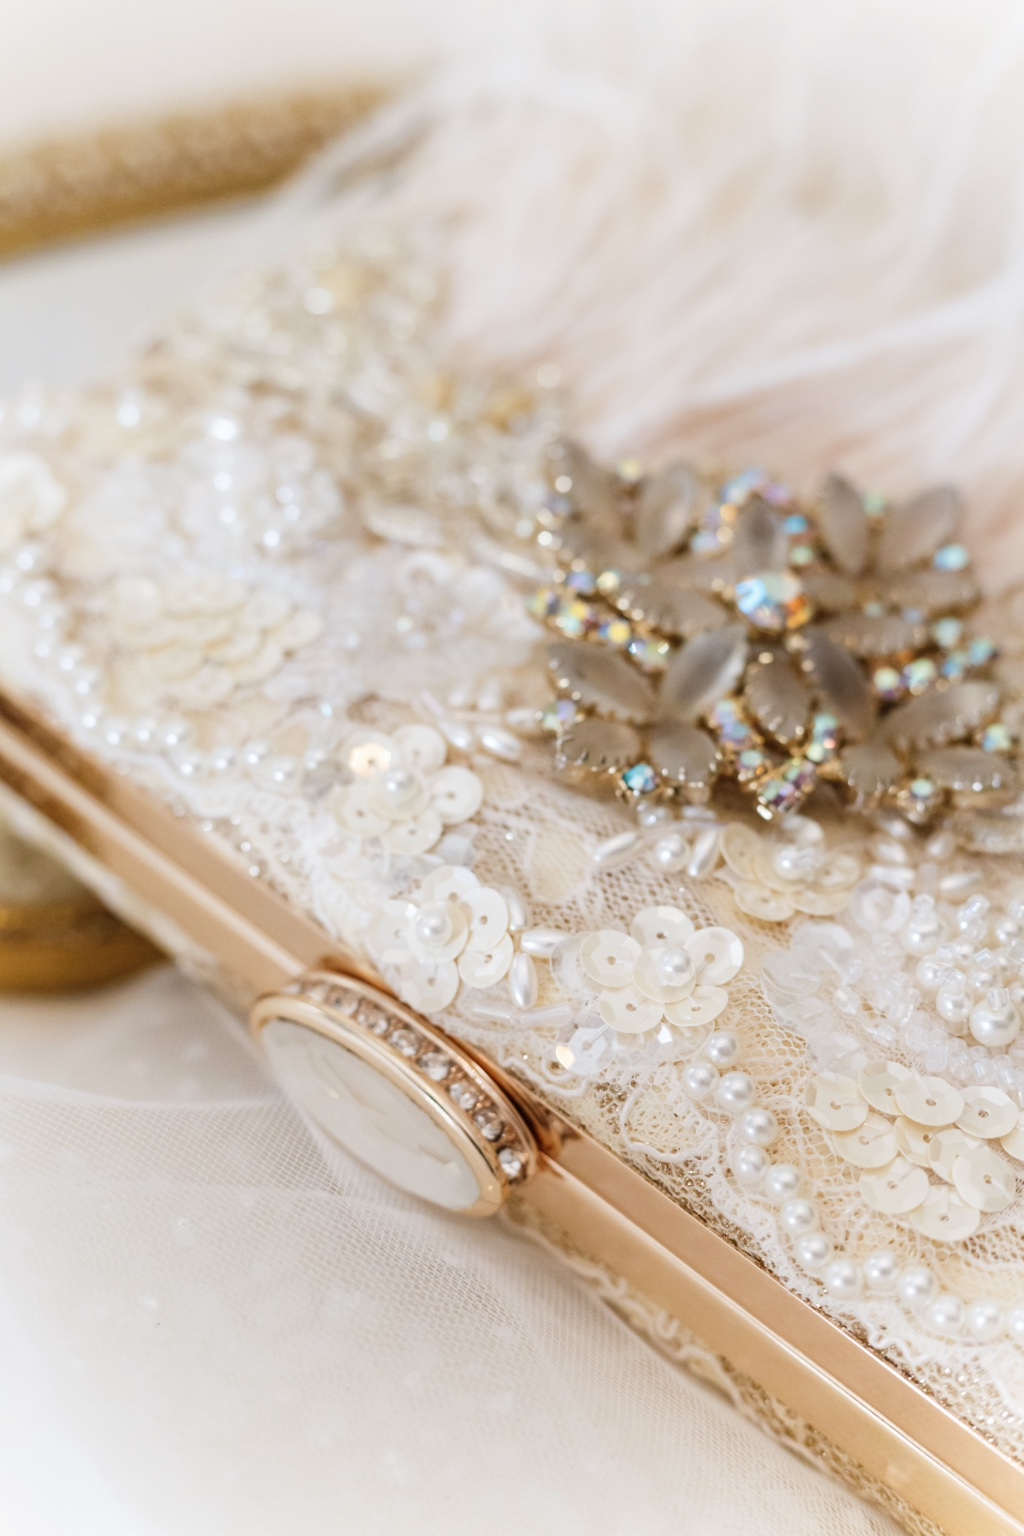 Bridal clutch details is what we love to design at Cloe Noel.